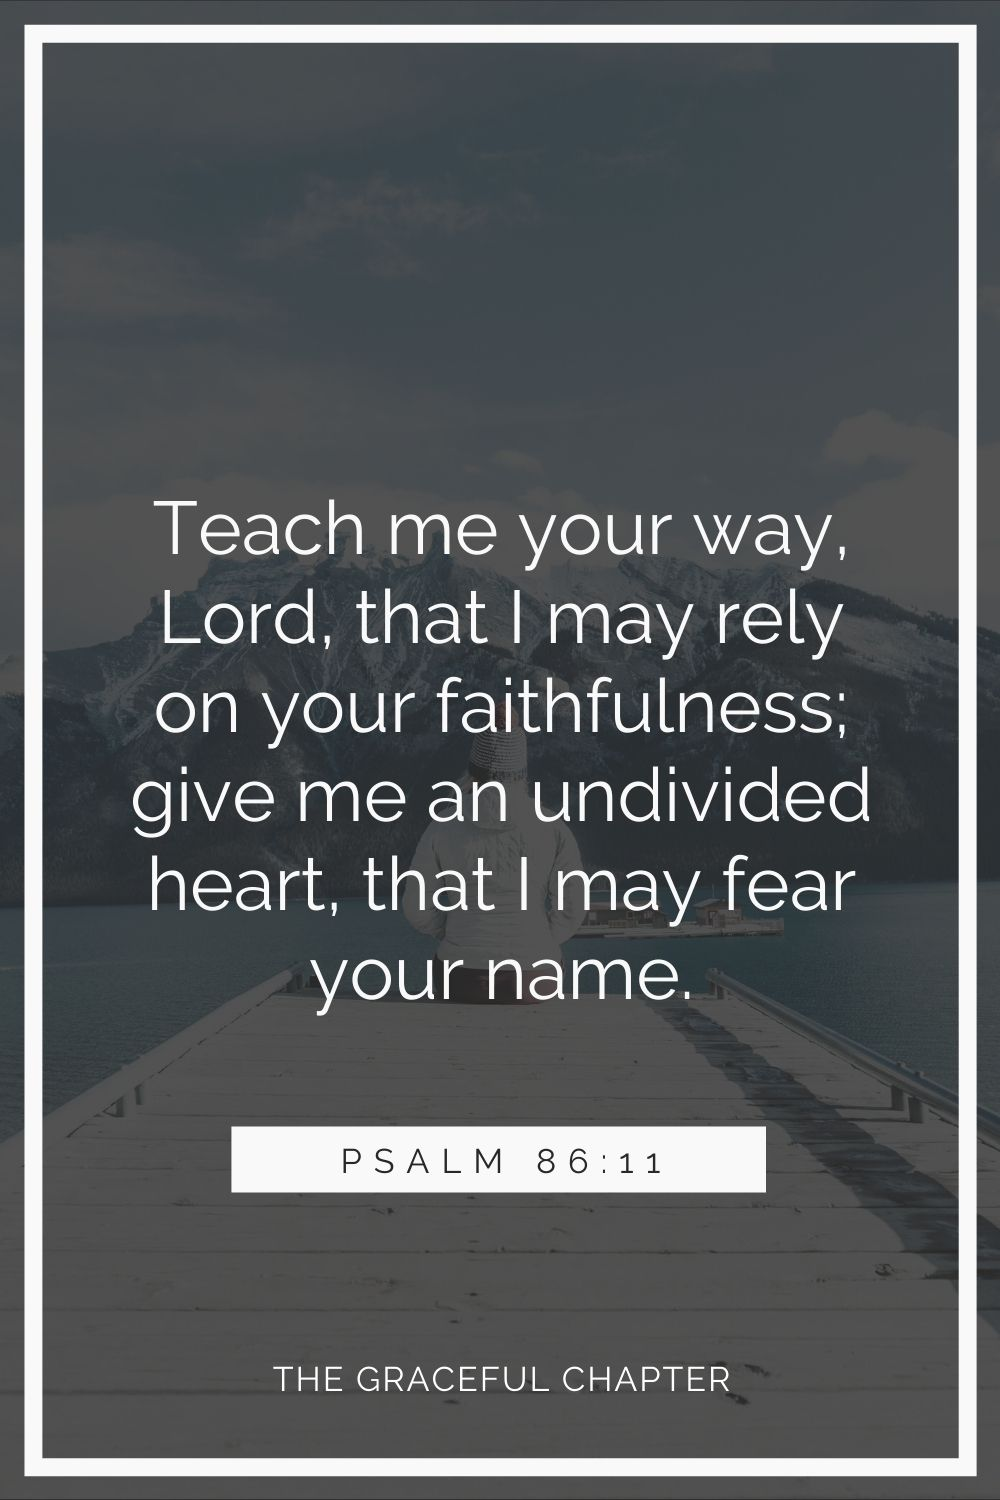 Teach me your way, Lord, that I may rely on your faithfulness; give me an undivided heart, that I may fear your name. Psalm 86:11